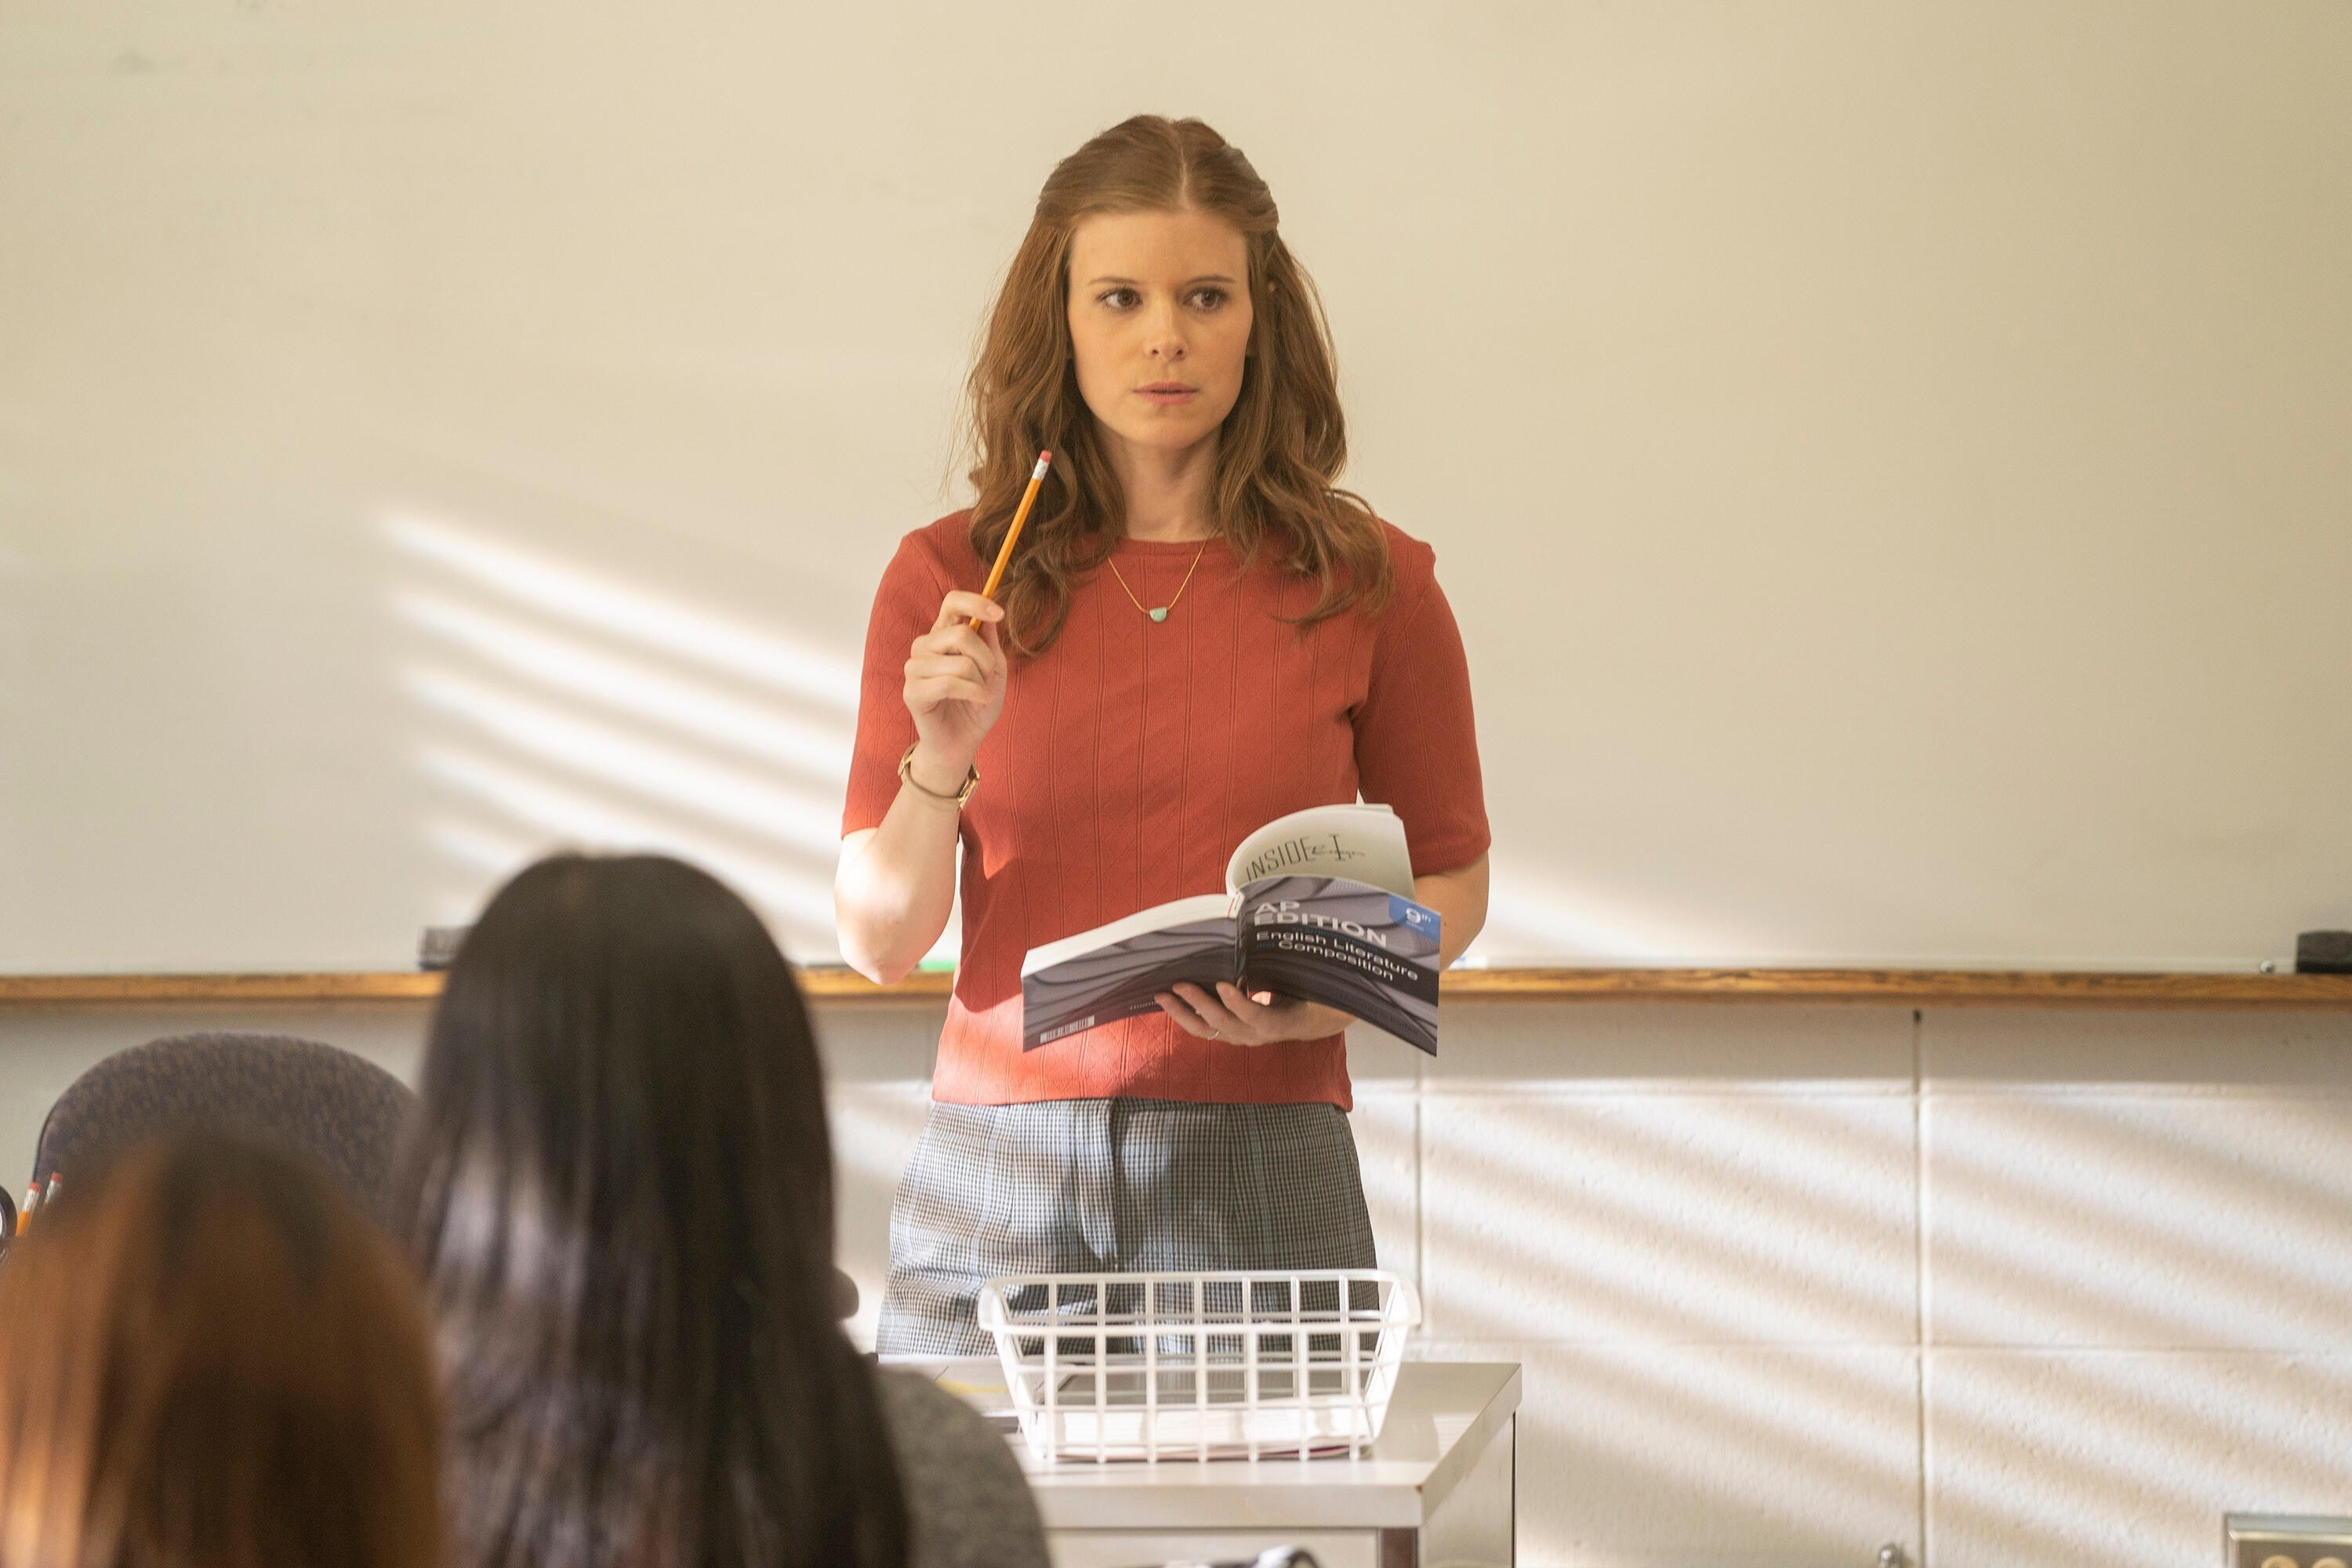 A TEACHER, Kate Mara, Episode 2.